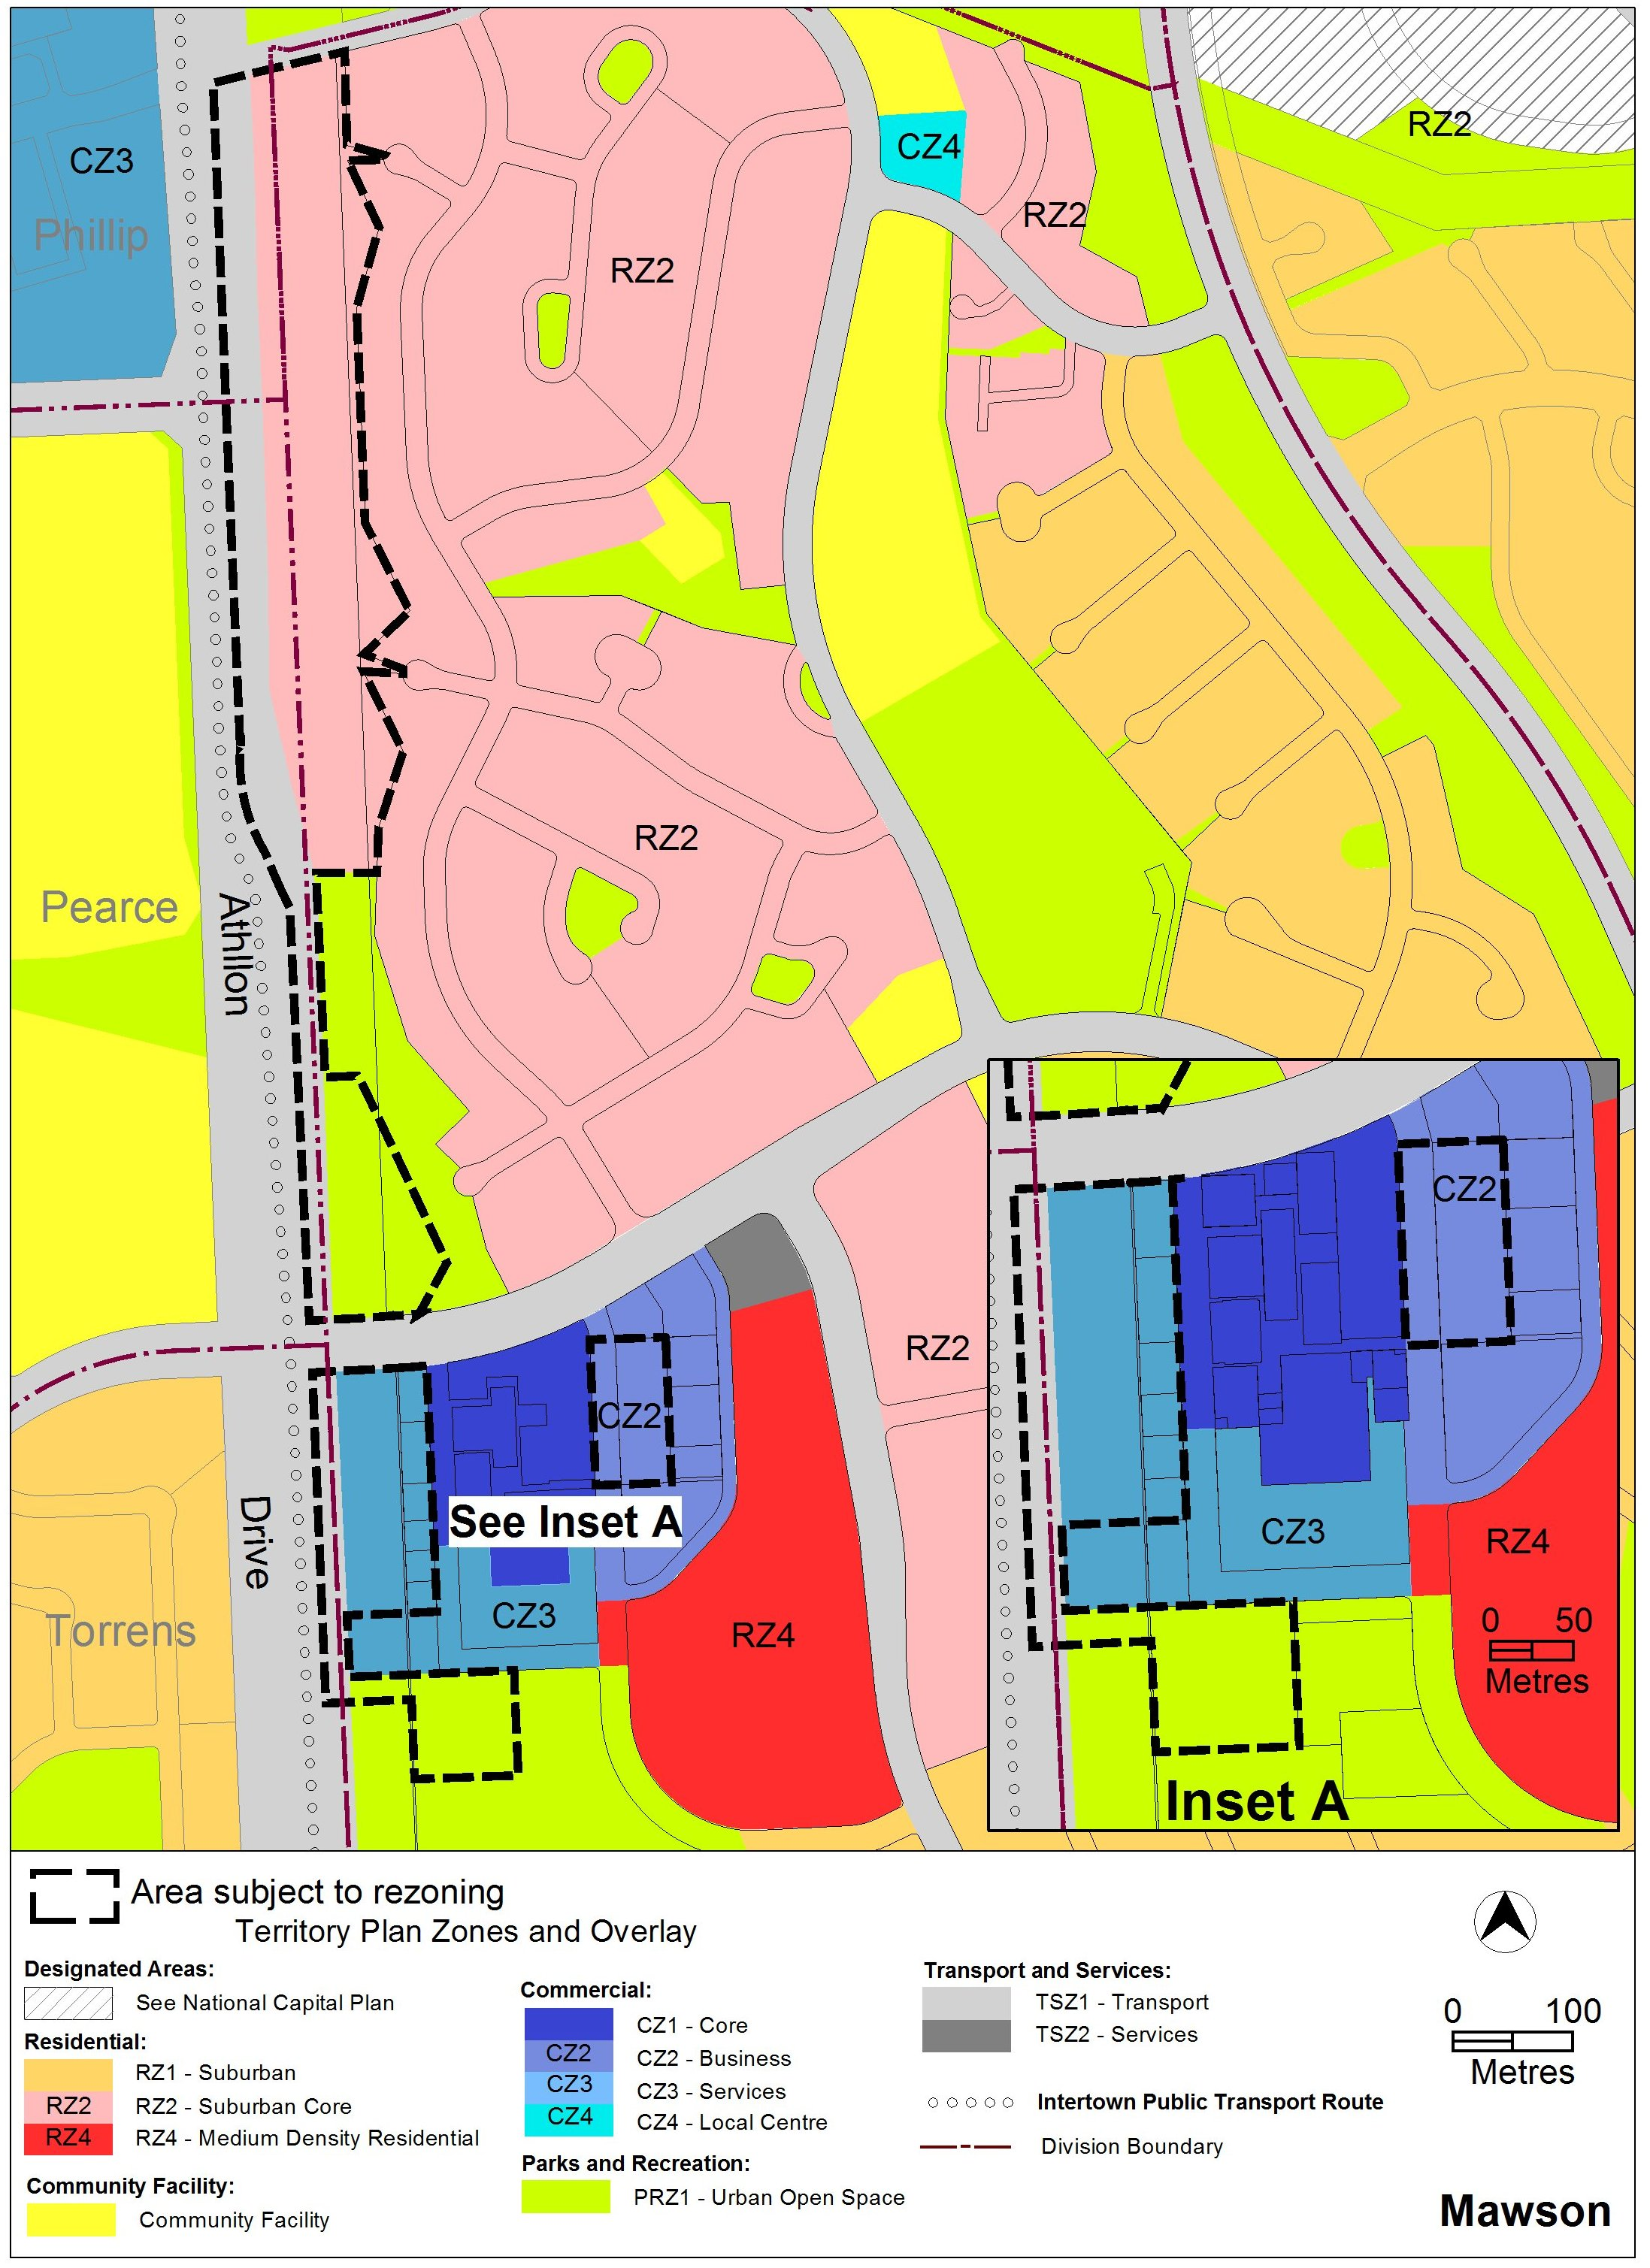 Before: Map of Mawson Centre showing current Territory Plan zoning